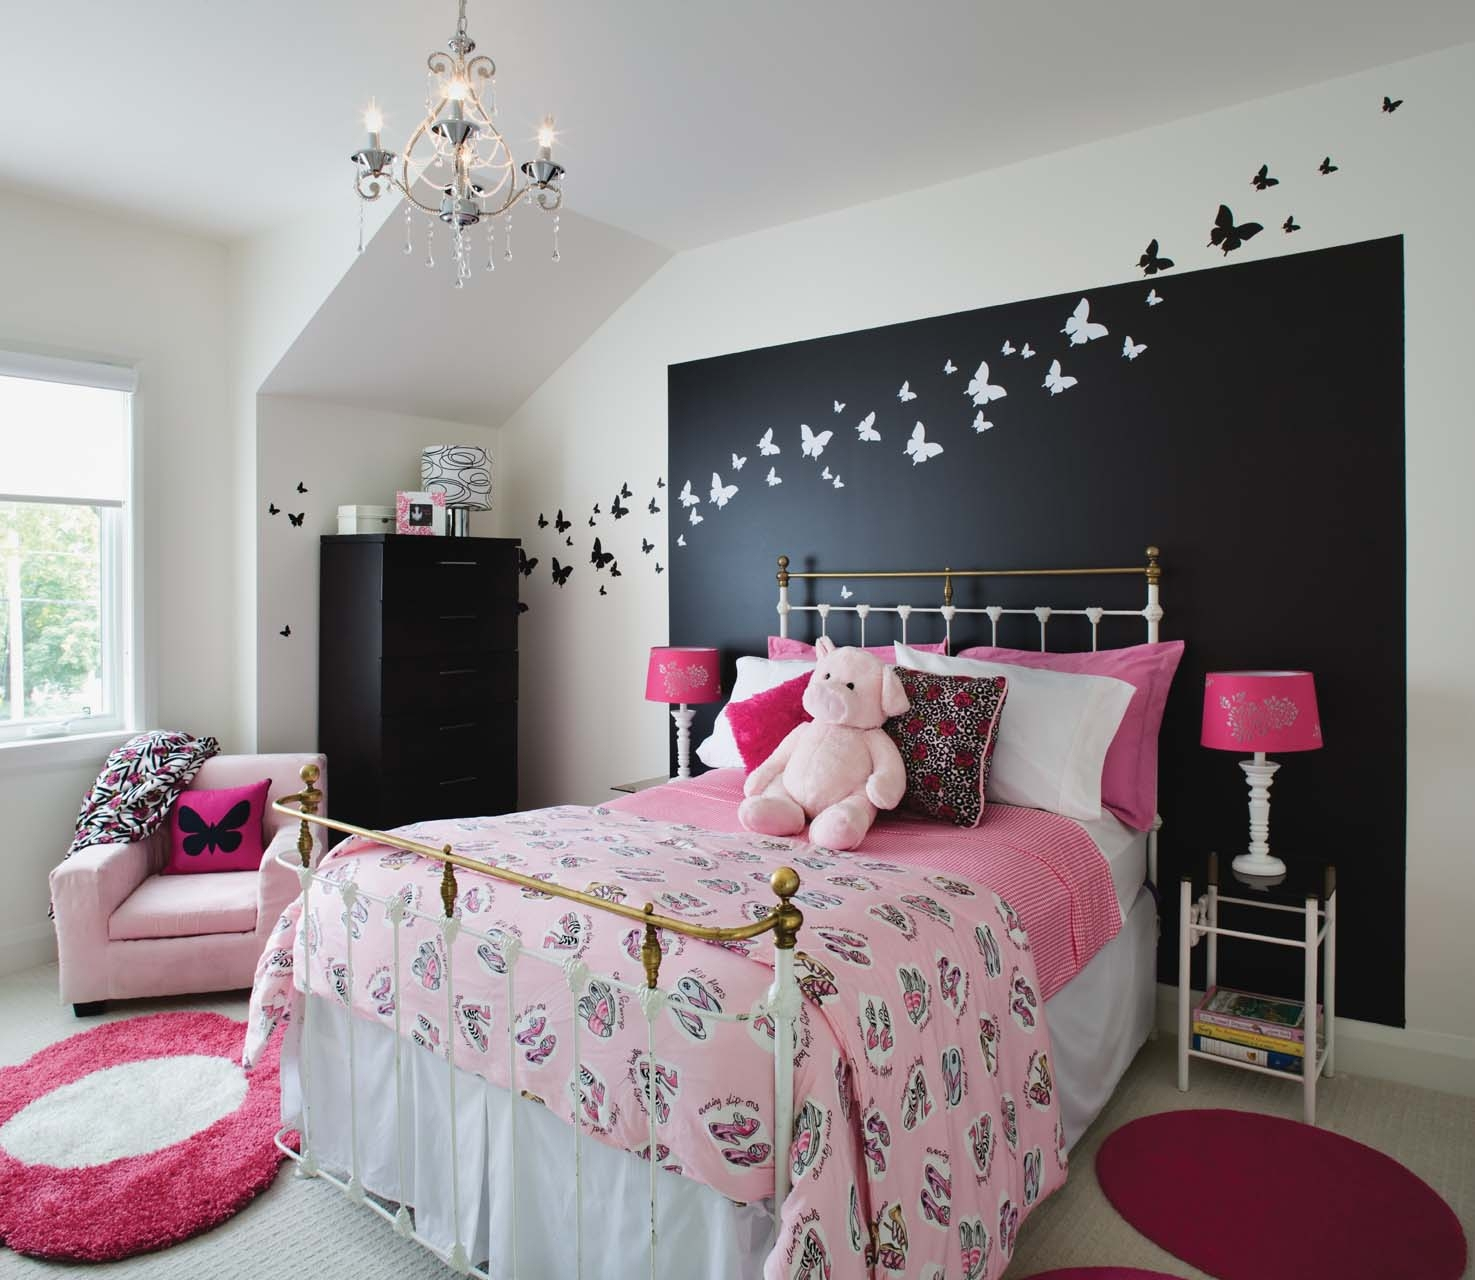 Beautiful Chambre Ado Fille Moderne Violet Beau Image Chambre Ado Fille  Swag Idees De Dcoration With Chambre Swag Ado